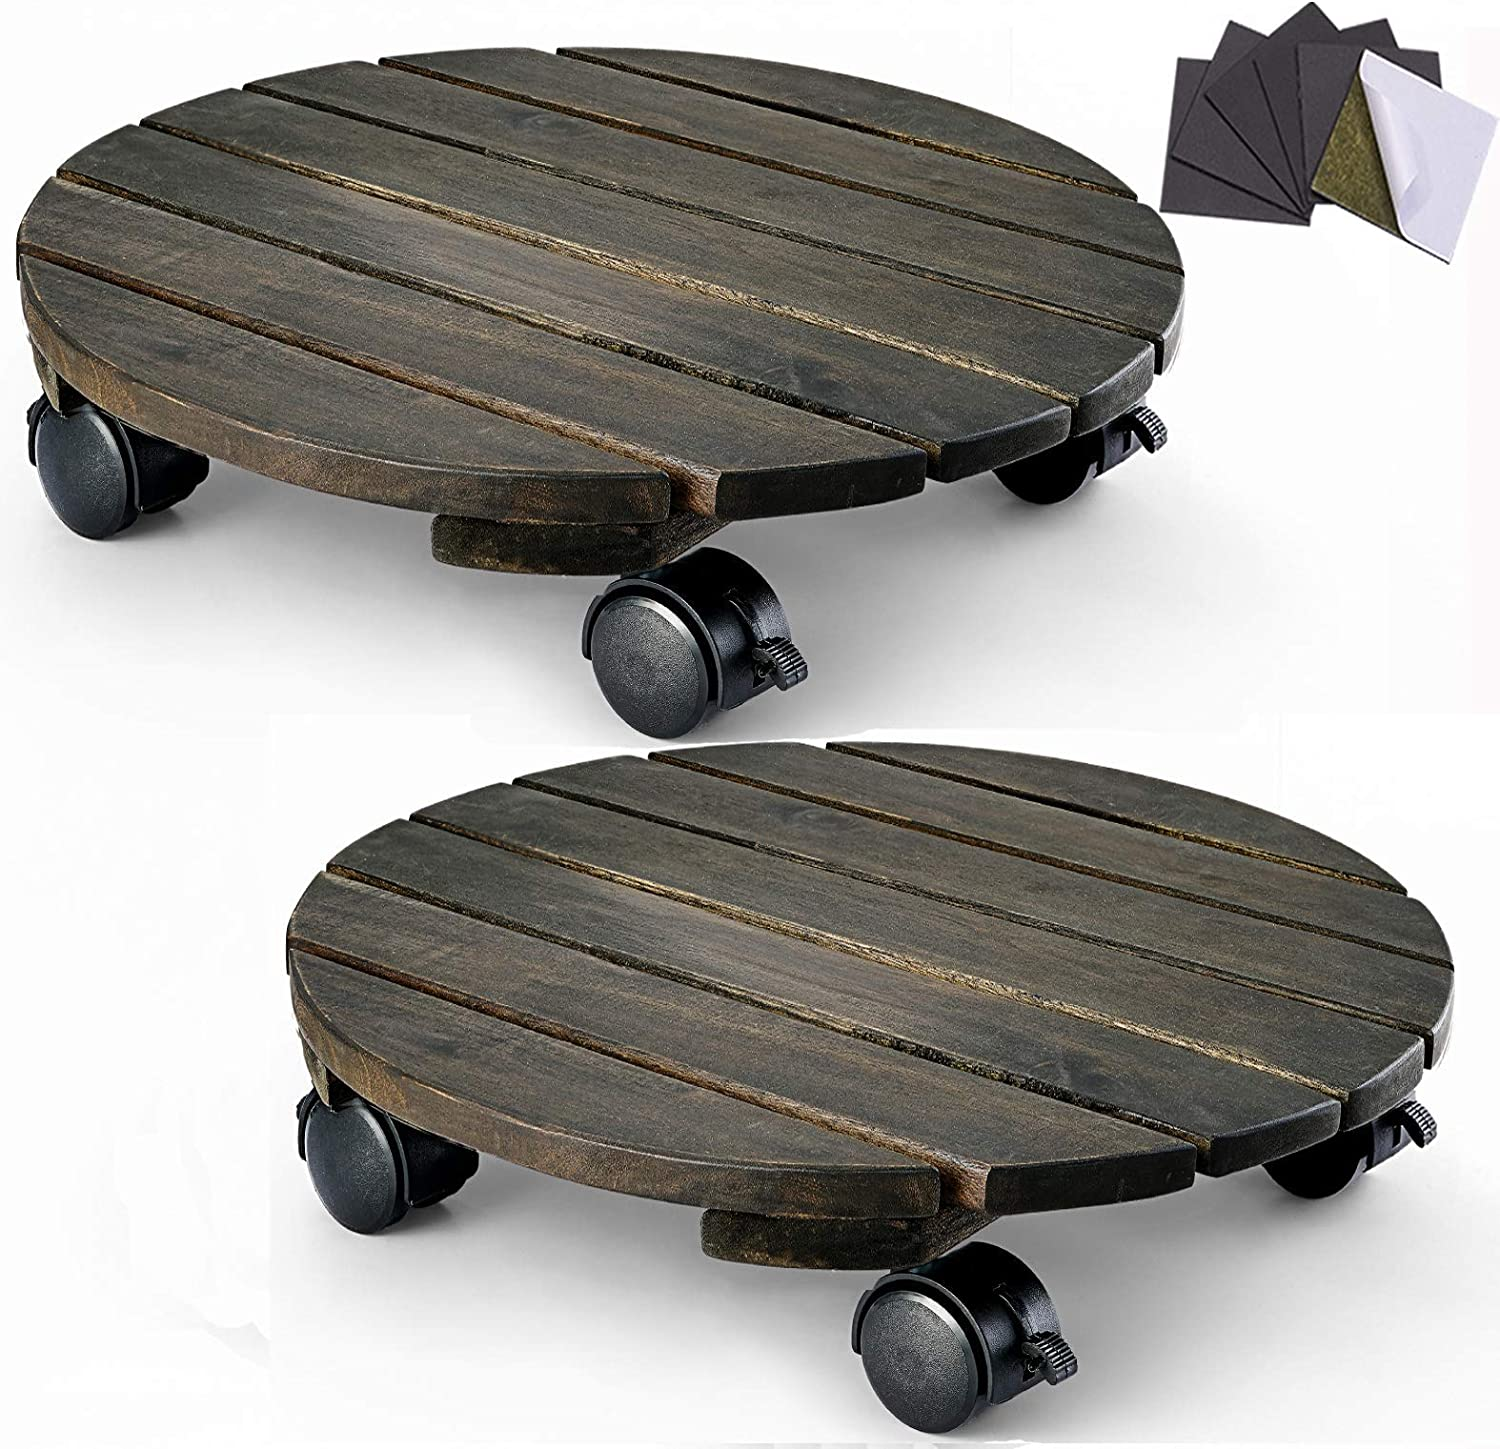 Renewed Set of 2 Plant Dolly Heavy Duty 12 inches Round Planter Trolley with Lockable Casters Walnut Color Indoor Outdoor Rolling Tray Coaster Flower Pot Mover Pot Dolly LITADA Acacia Wood Plant Caddy